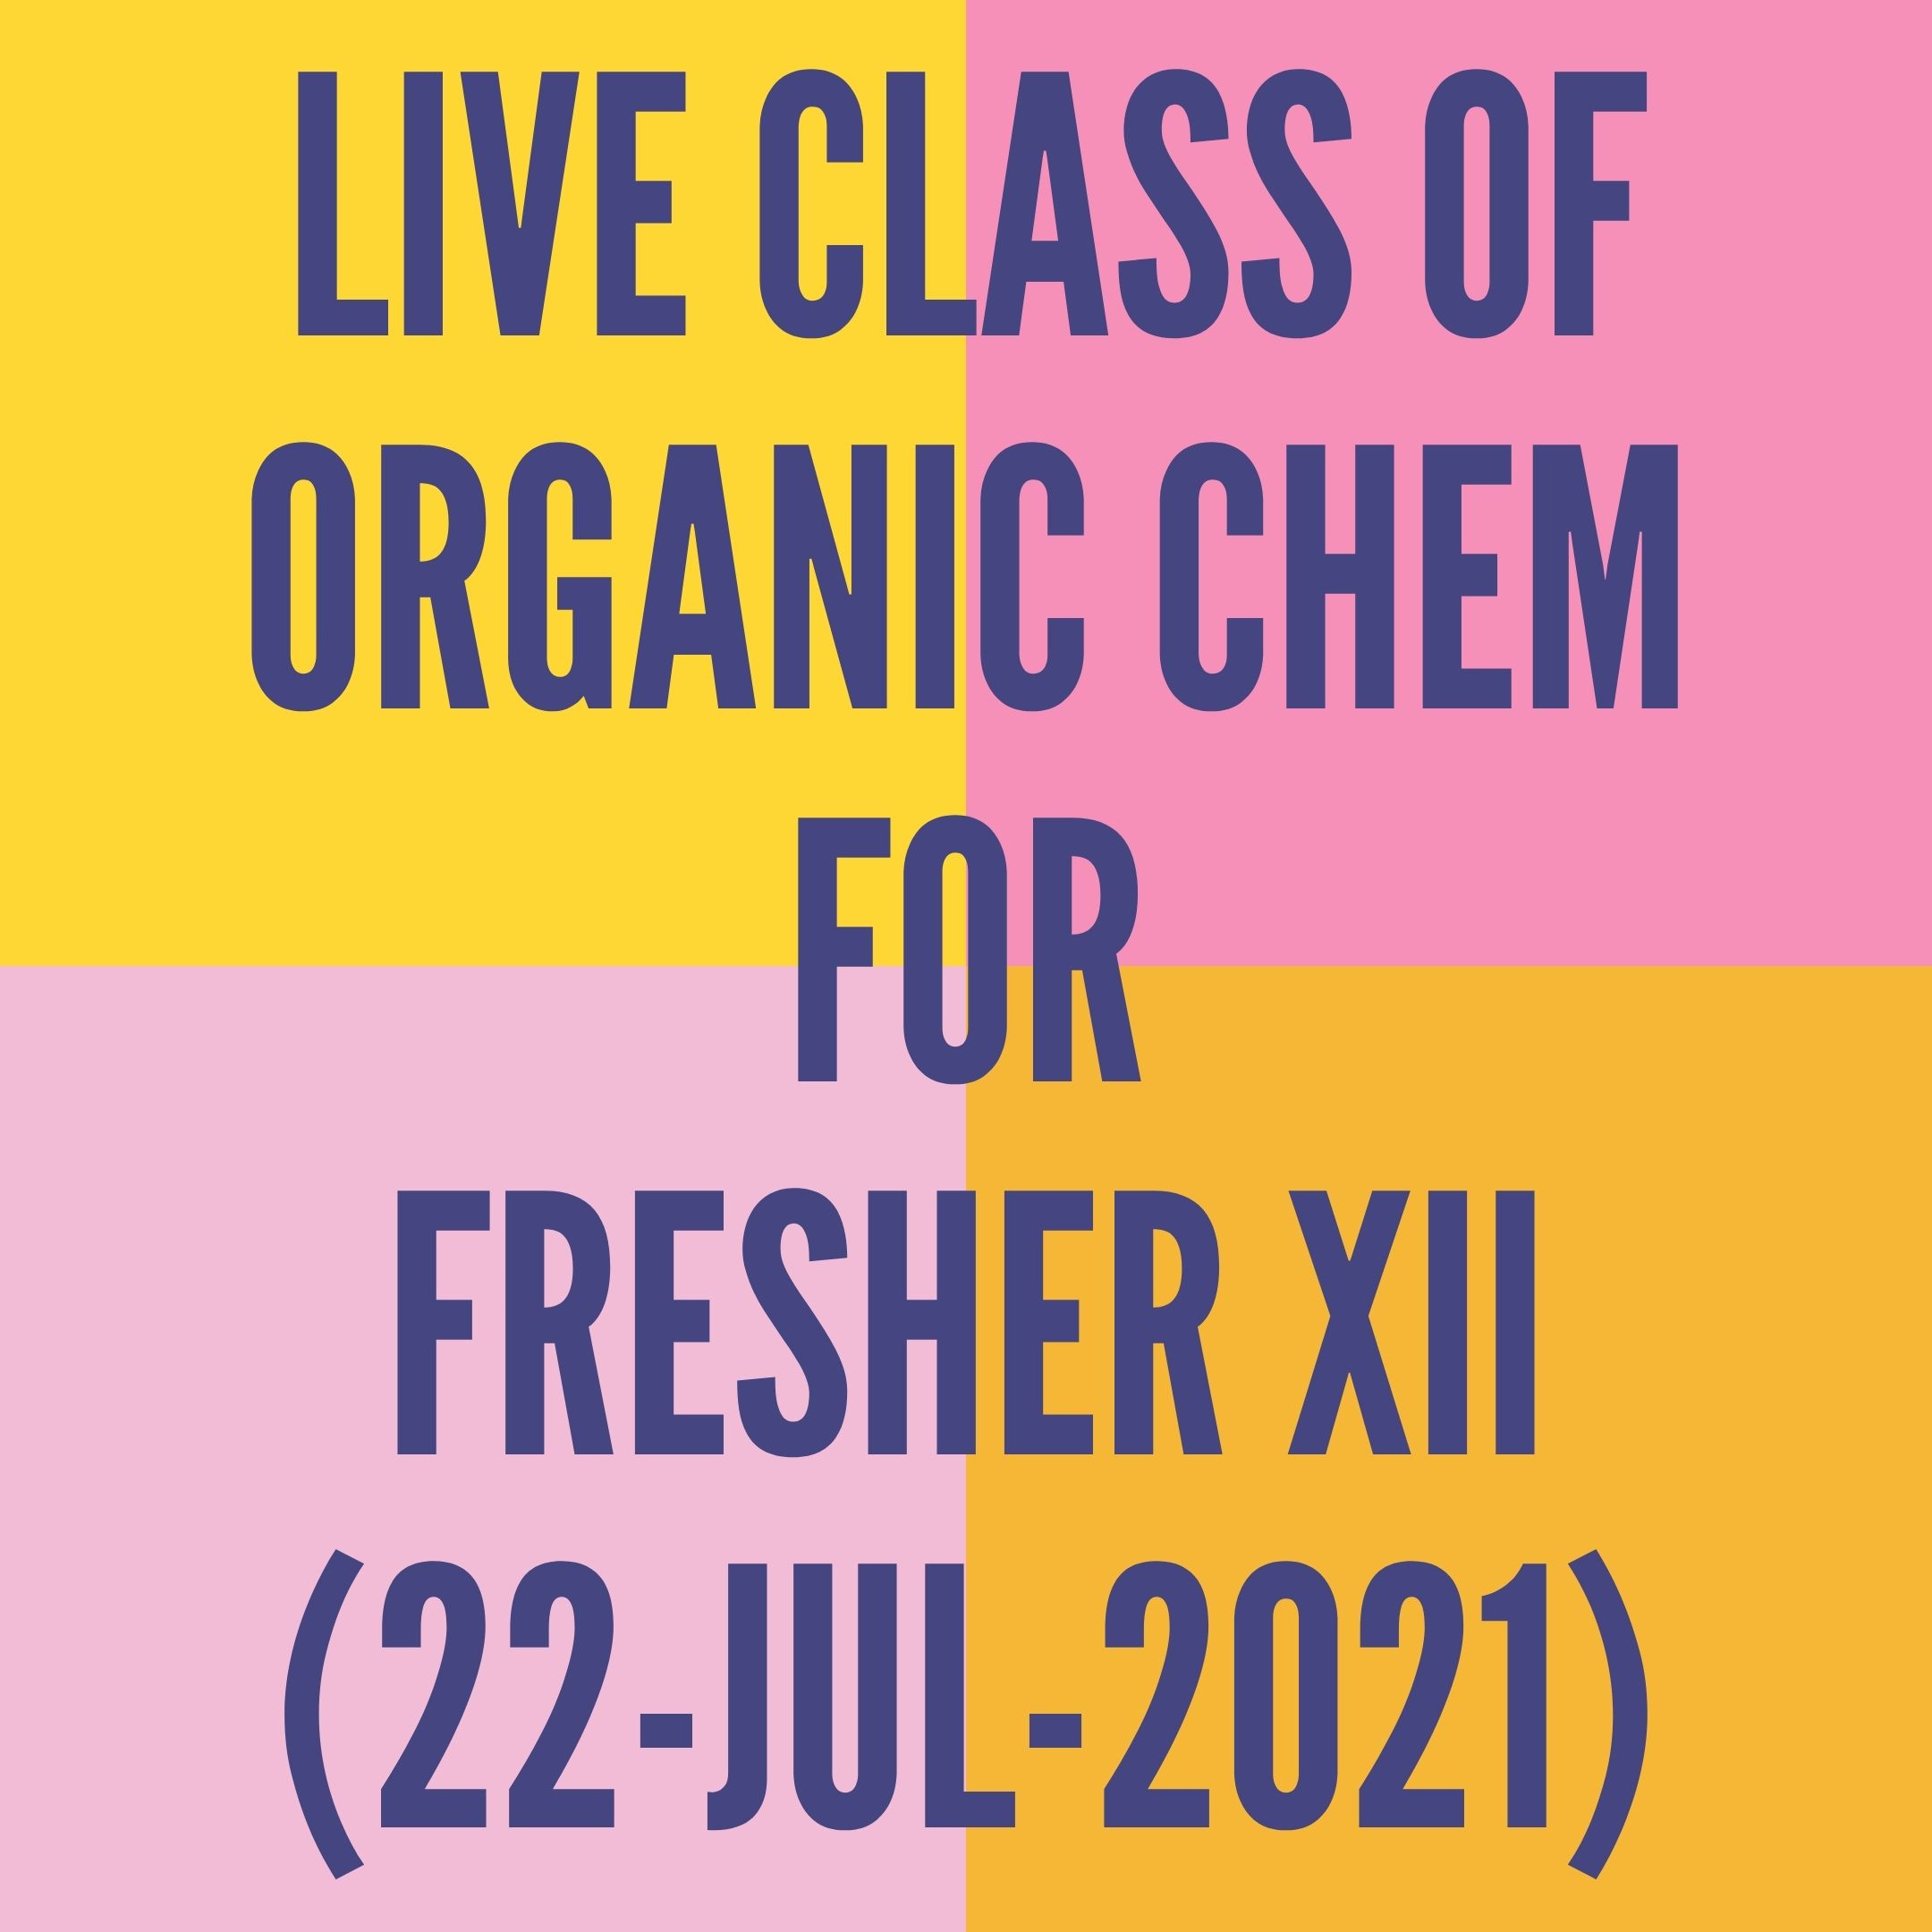 LIVE CLASS OF ORGANIC CHEMISTRY FOR FRESHER XII (22-JUL-2021) REACTION MECHANISM